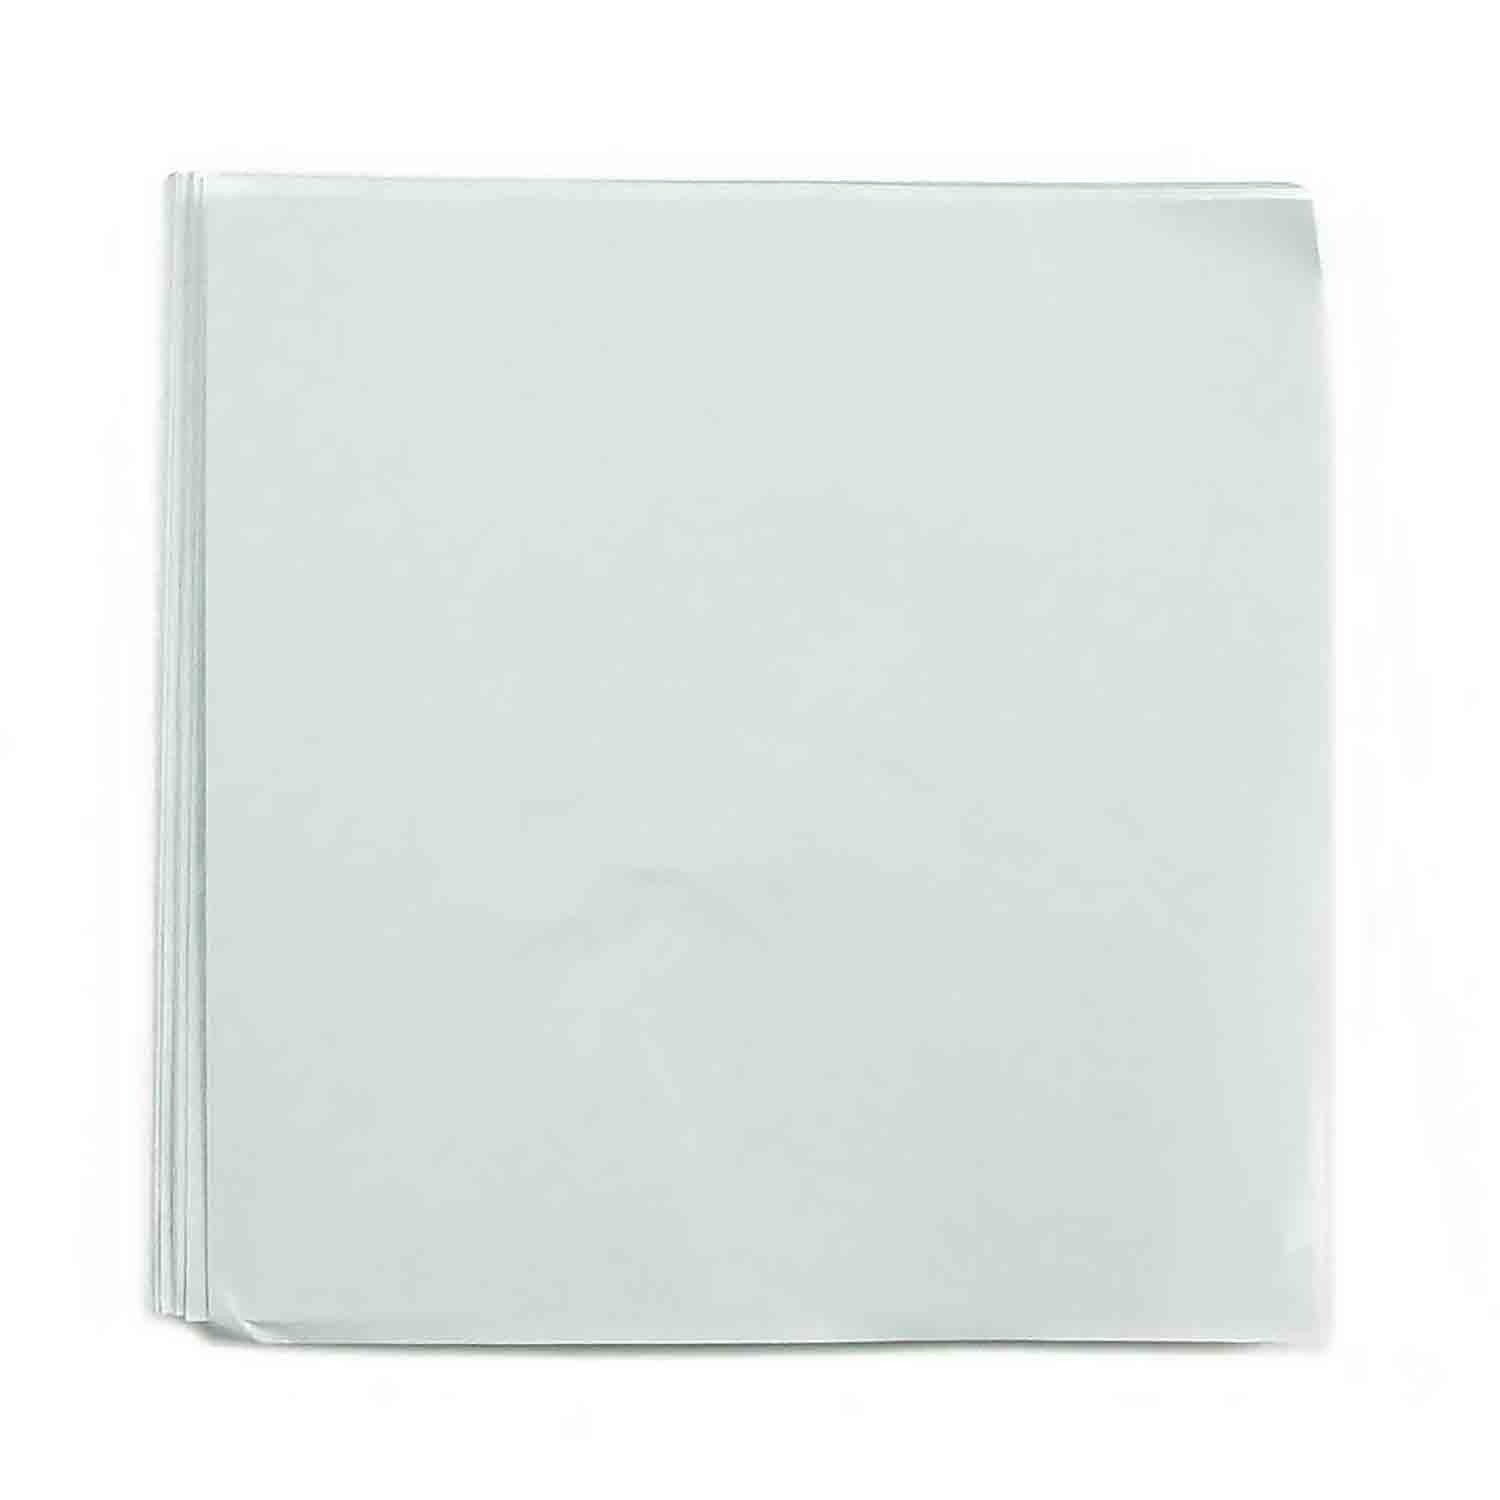 "6 x 6"" Foil Wrapper White"